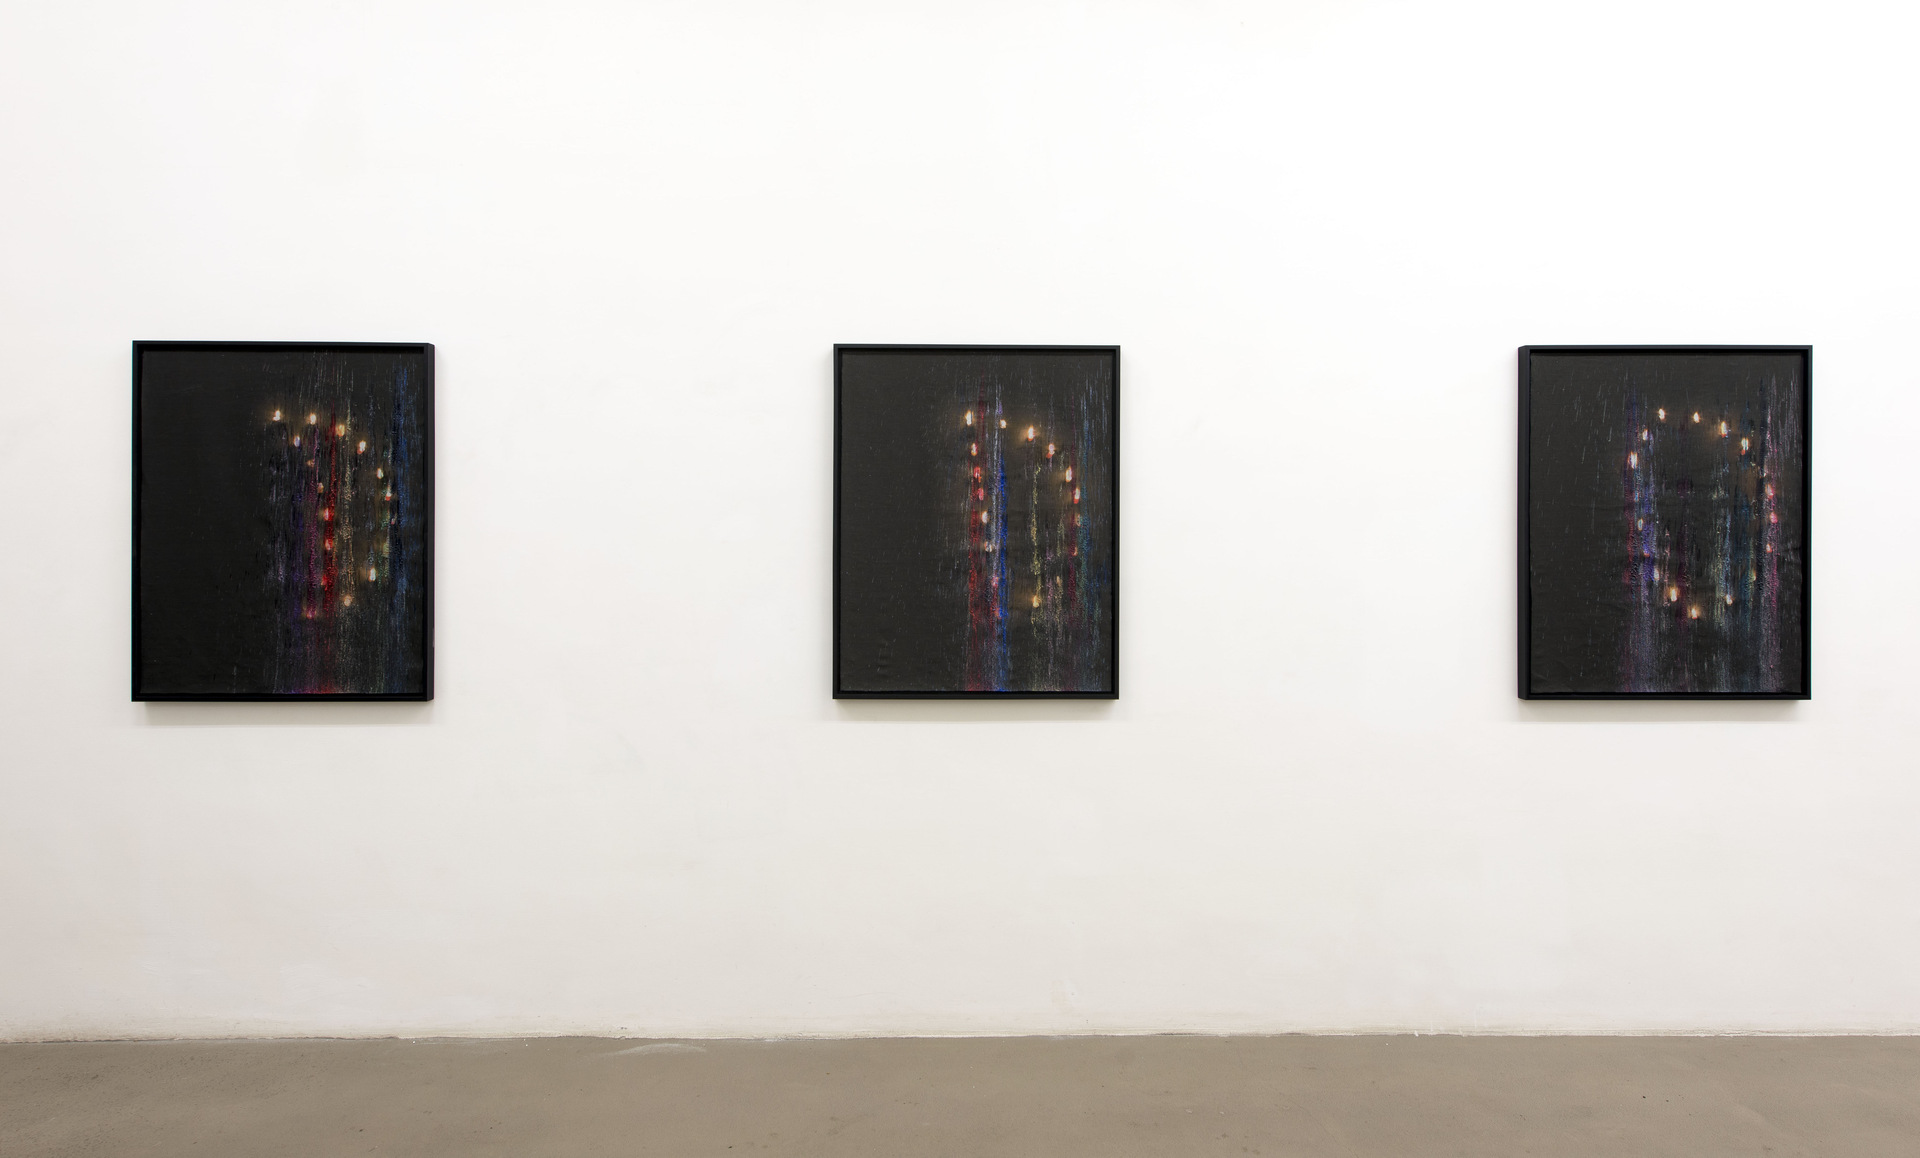 A_FG_Installation view_02